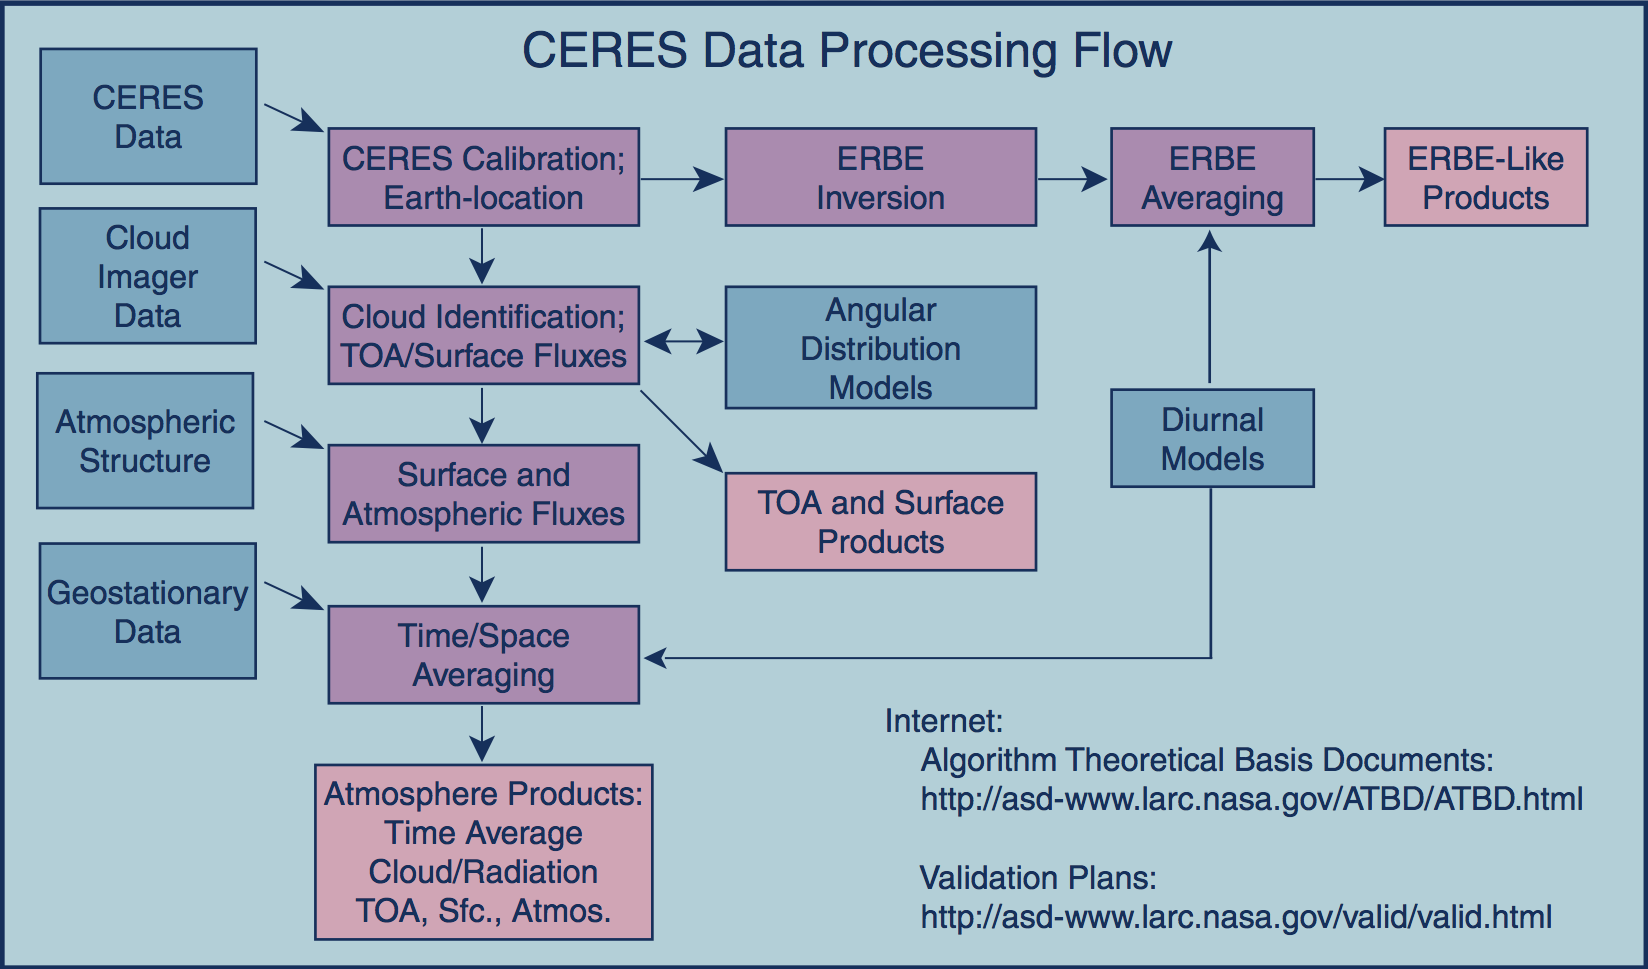 Image: CERES Data Processing Flow